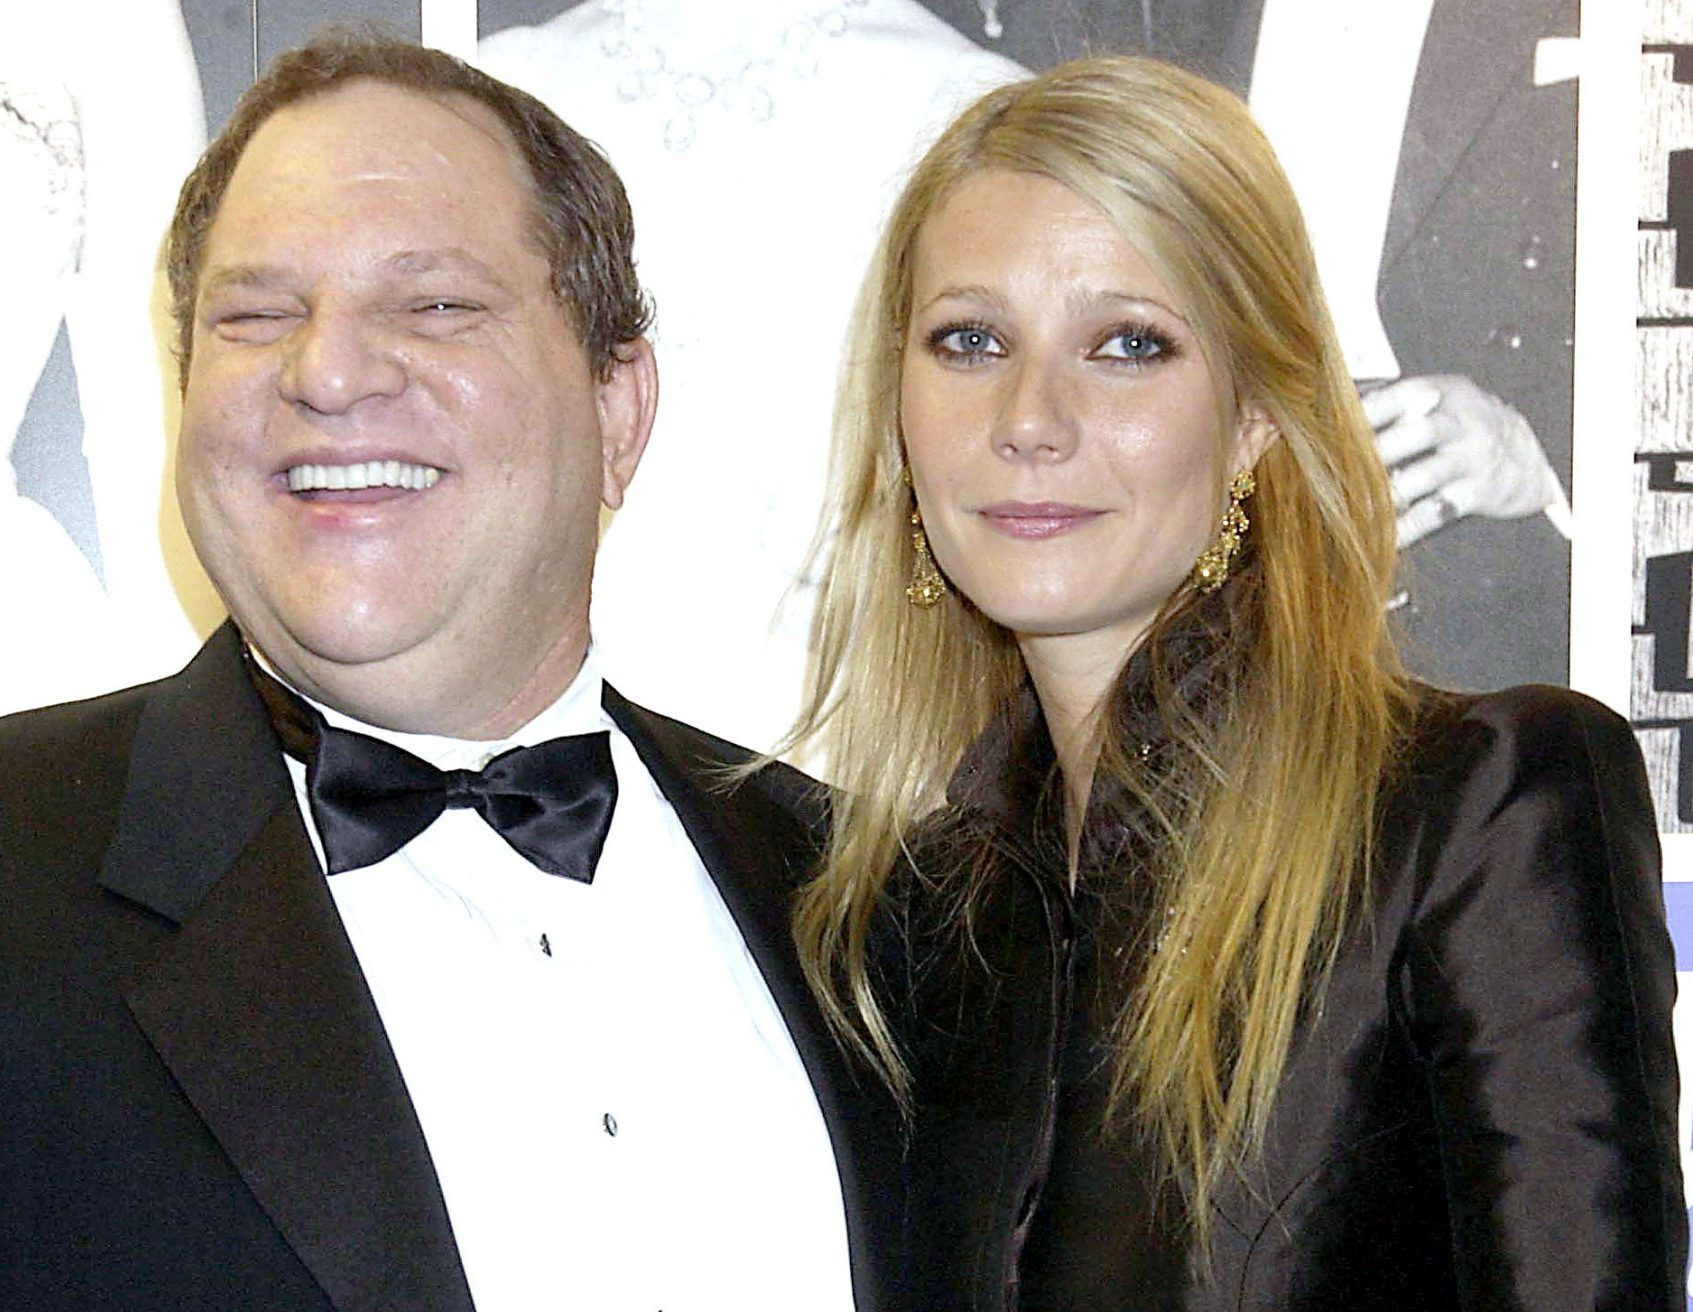 Gwyneth Paltrow 'never afraid' to stand up to Harvey Weinstein as she recalls 'uncomfortable experience'